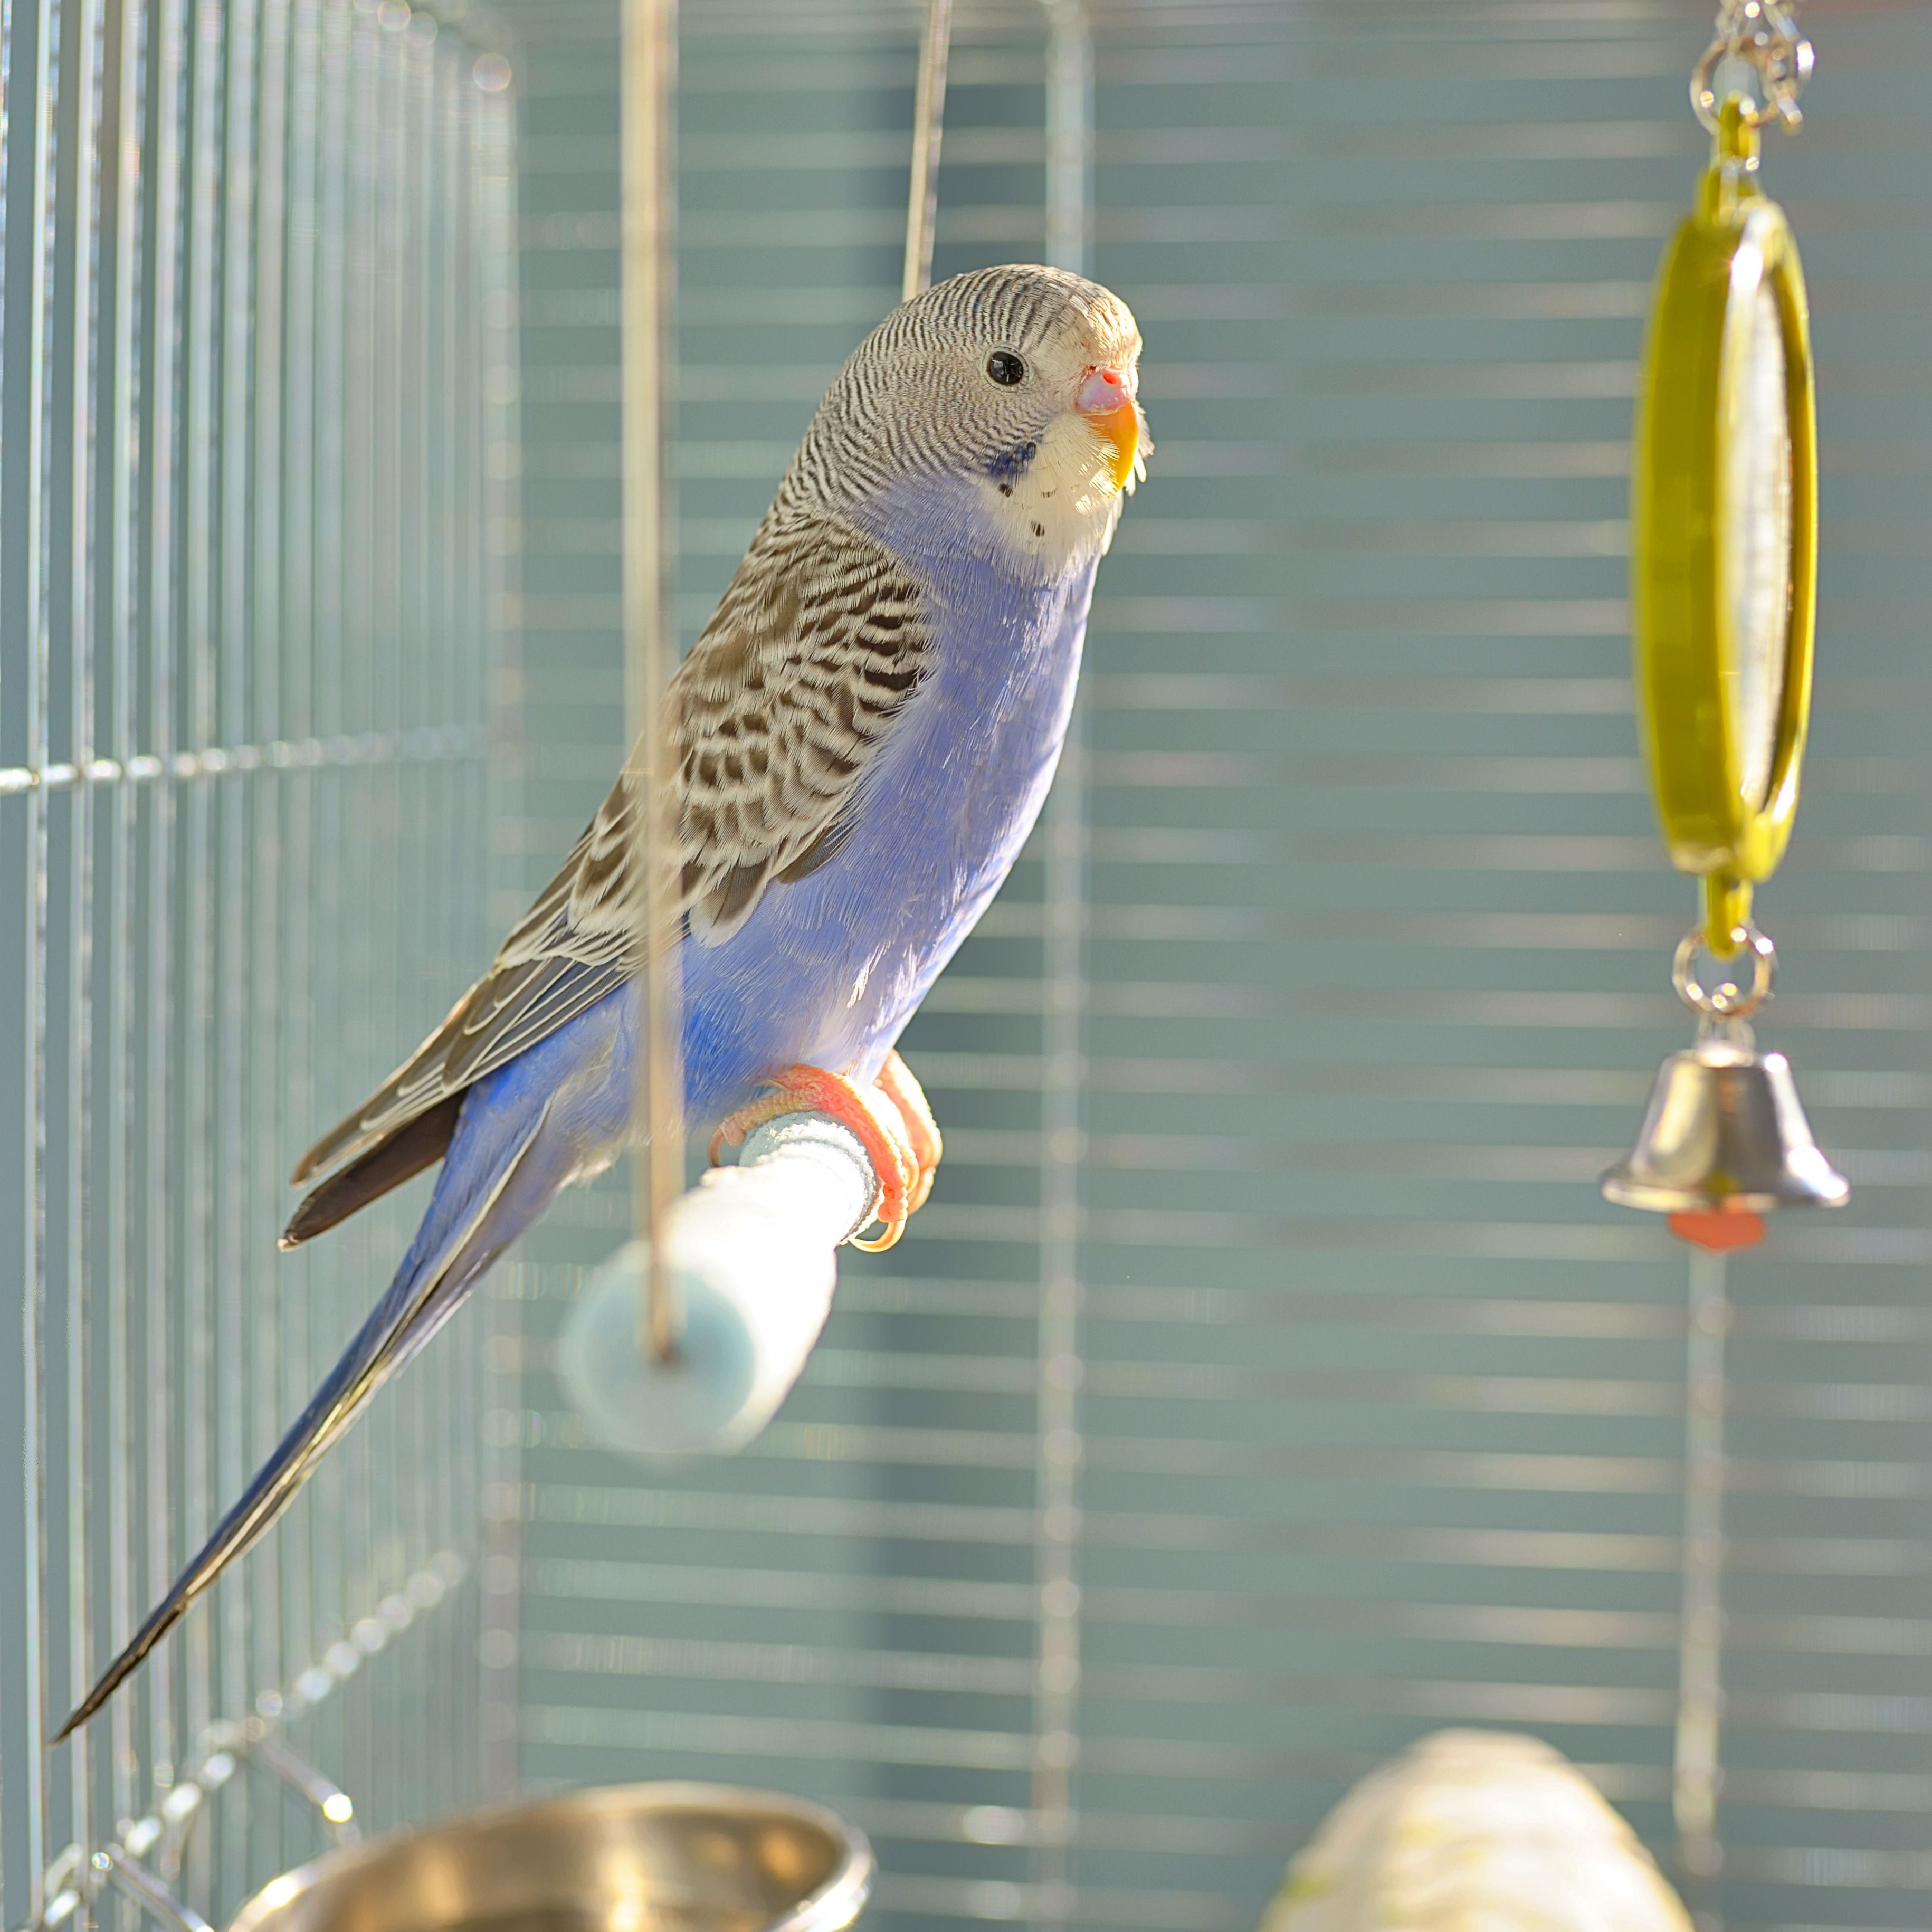 How to Keep Parrots and Other Birds from Getting Bored